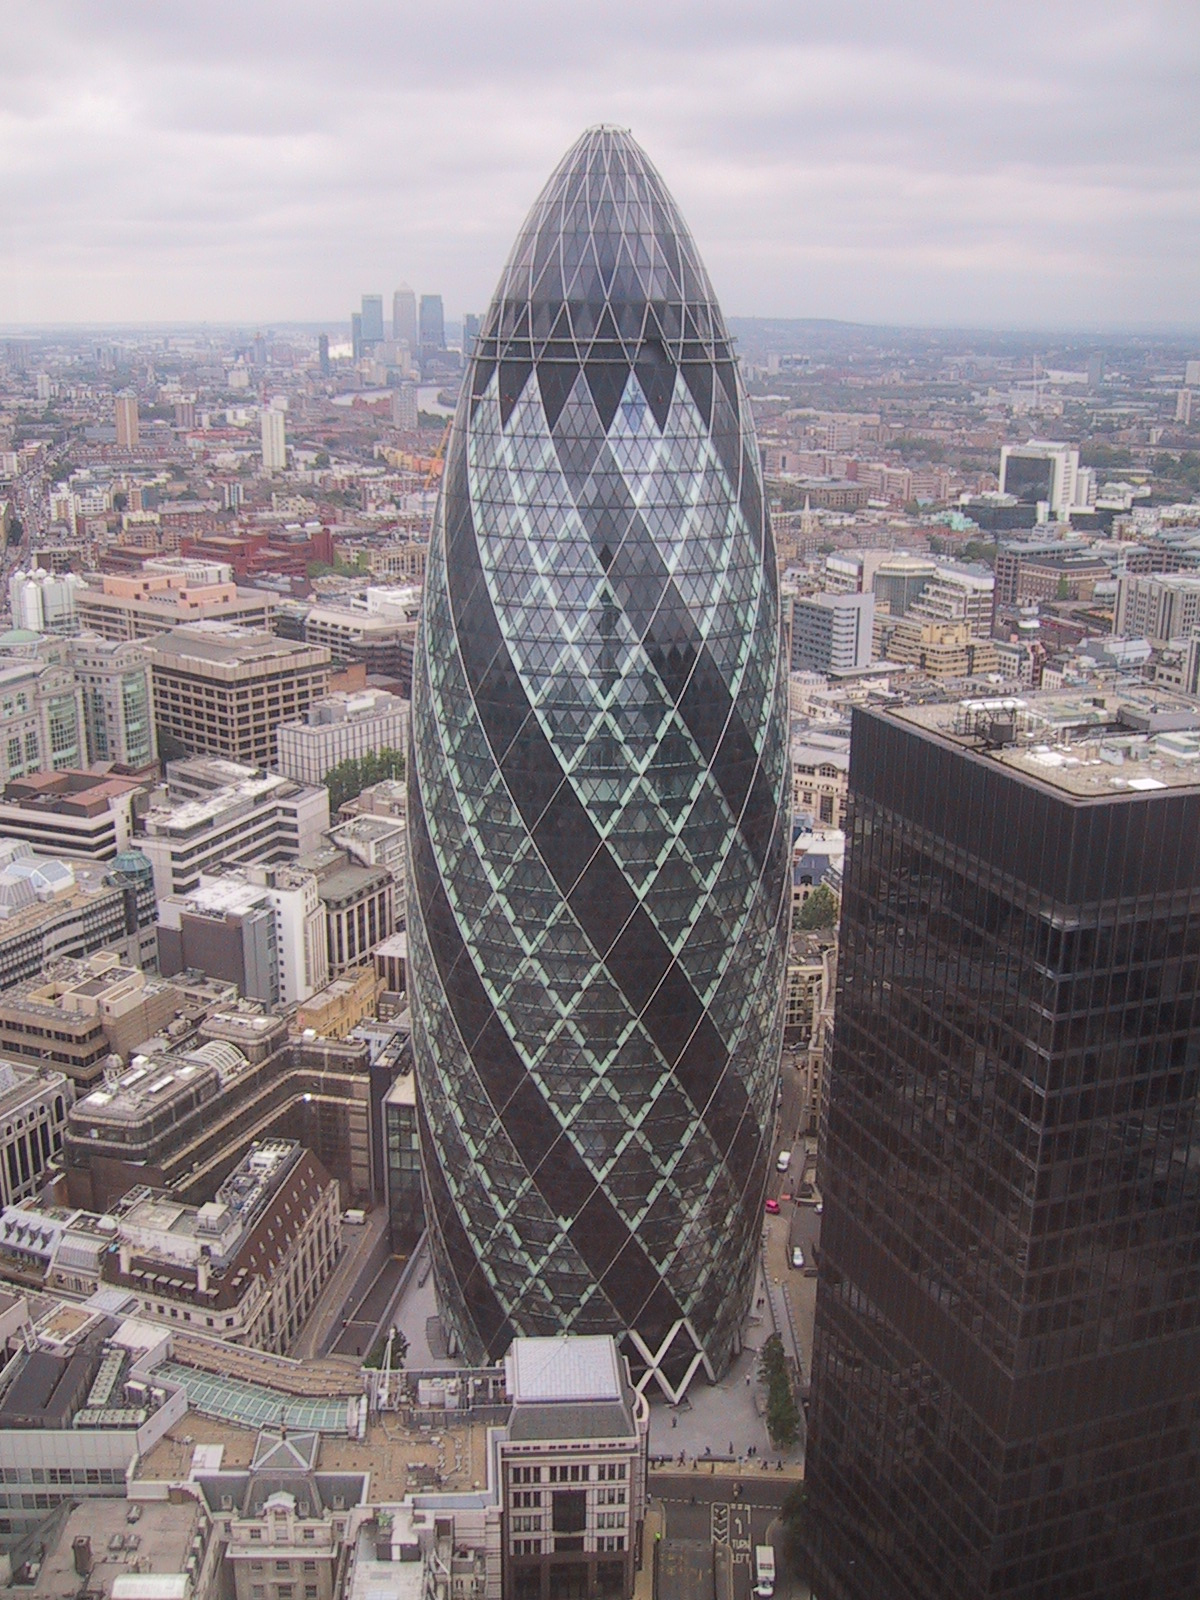 The Gherkin - 30 St Mary Axe